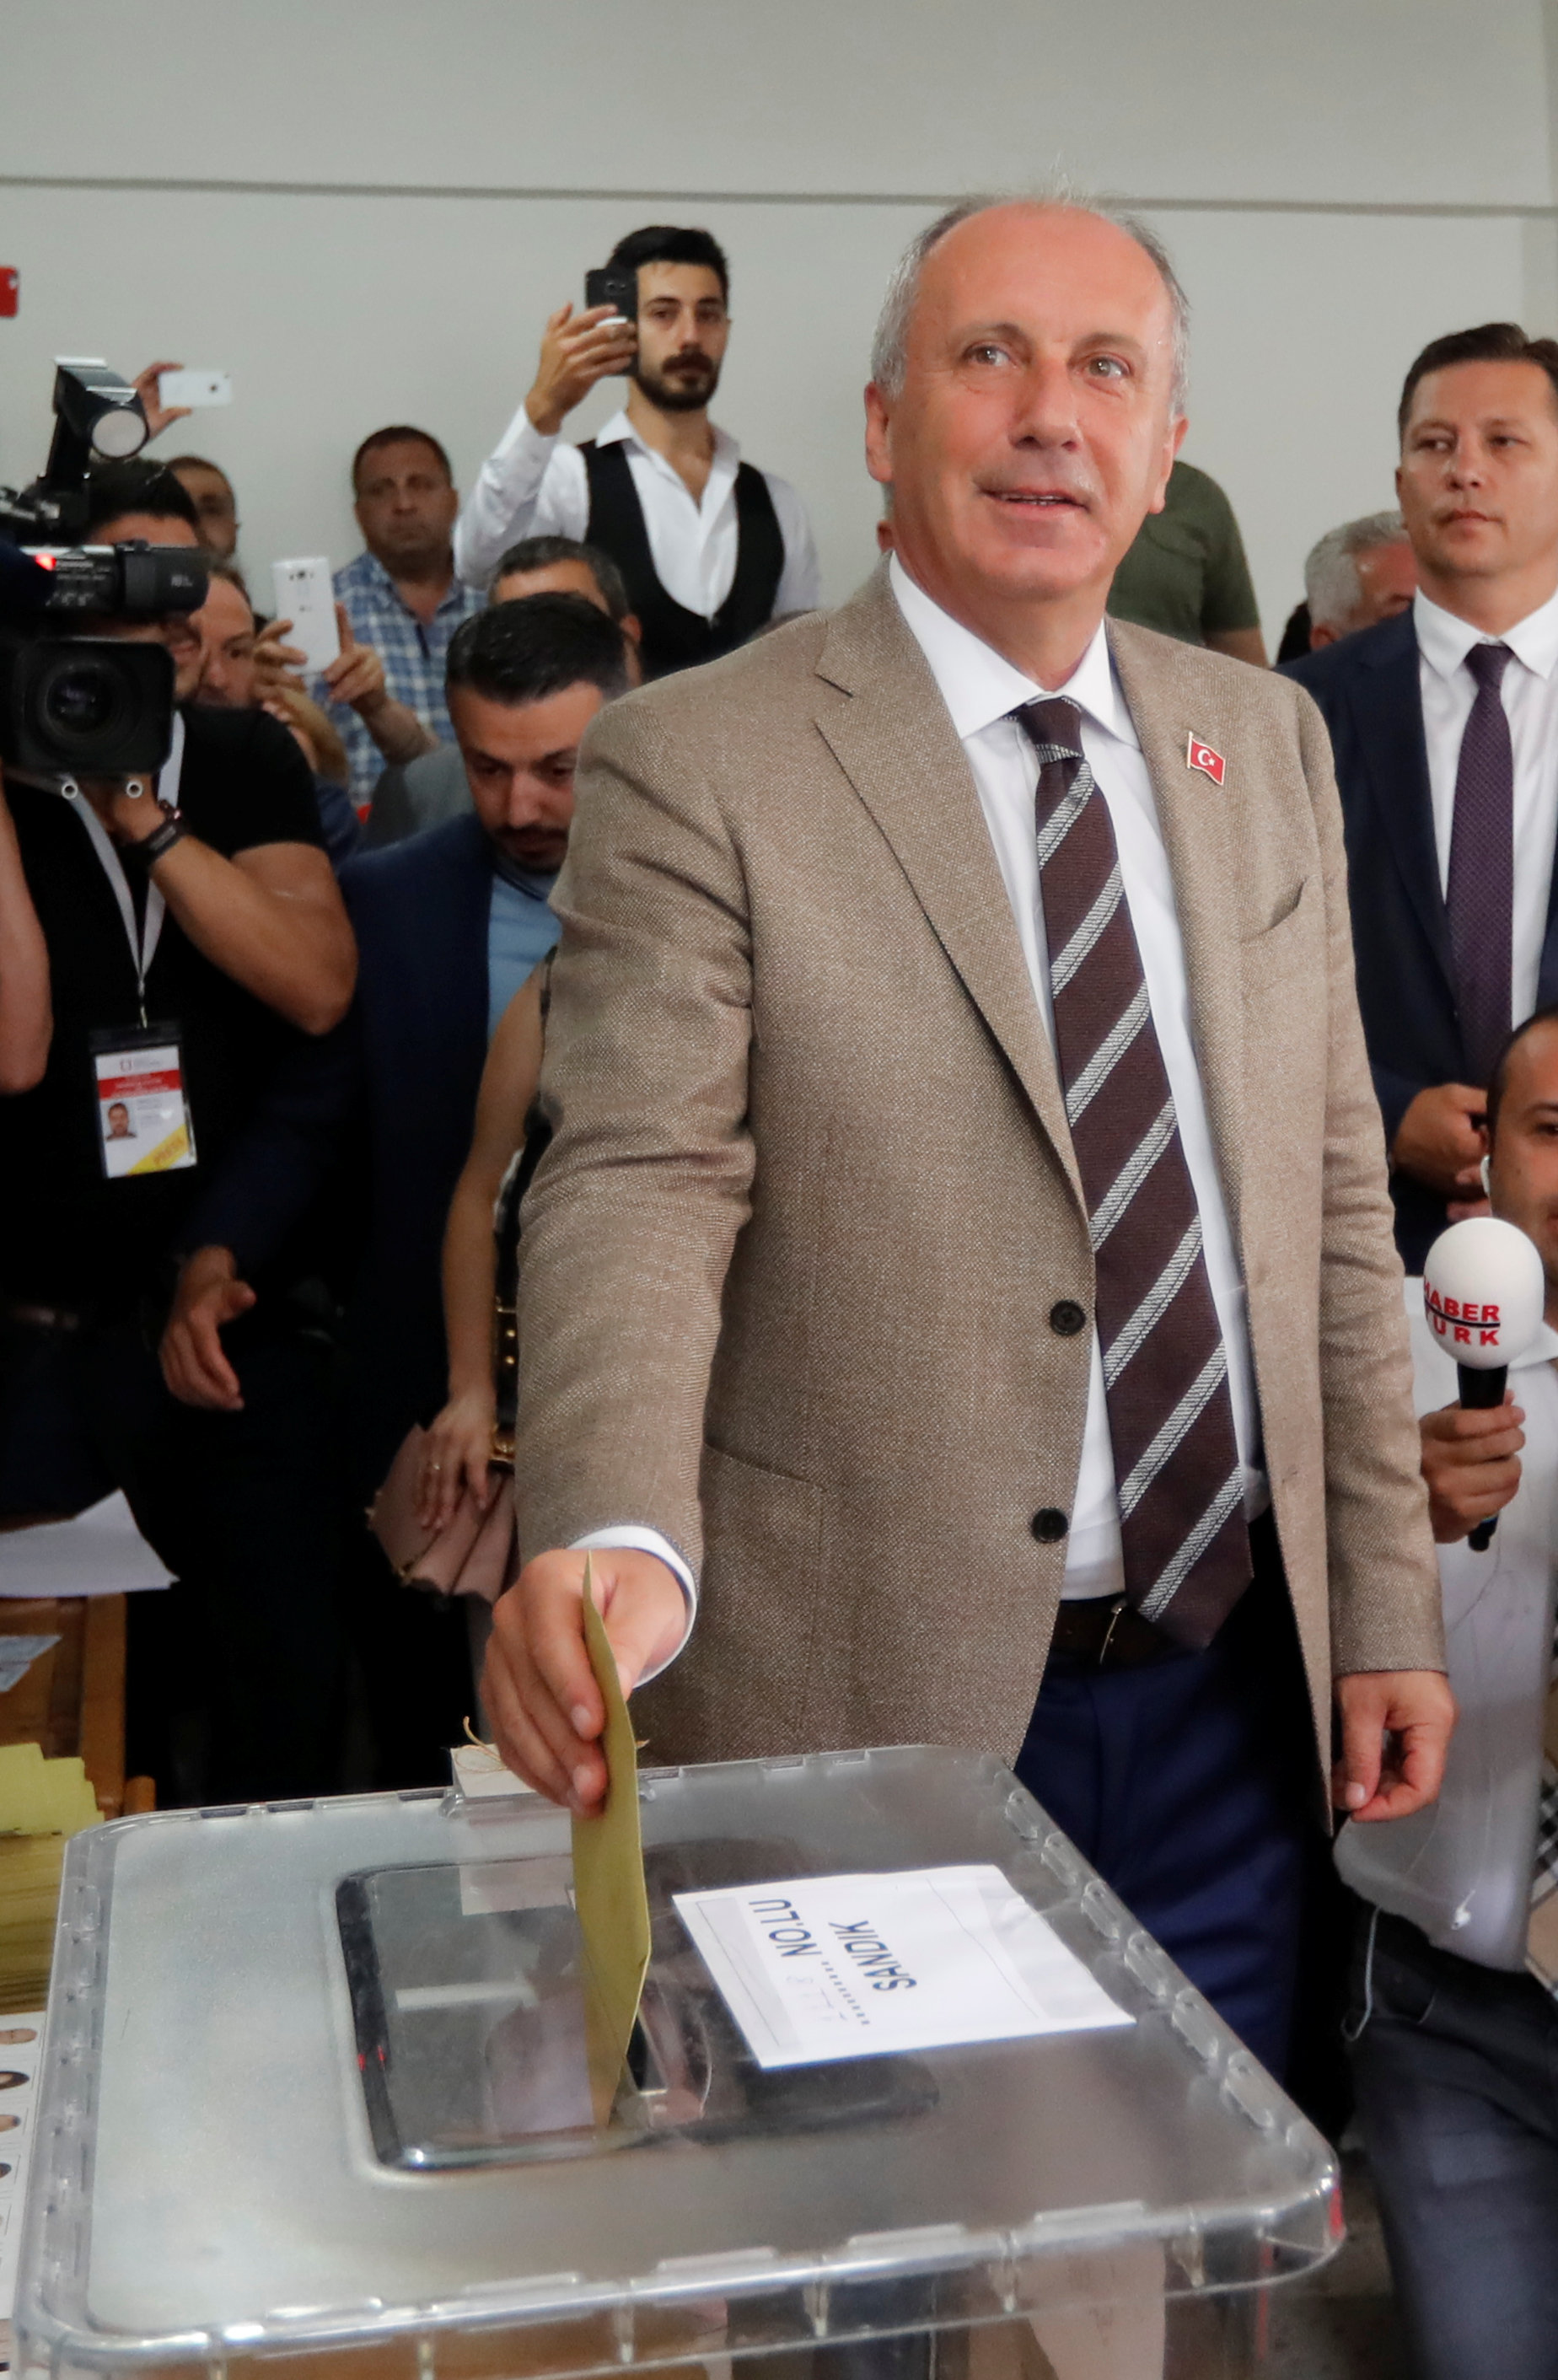 2018-06-24T074116Z_406650832_RC1726ED73A0_RTRMADP_3_TURKEY-ELECTION